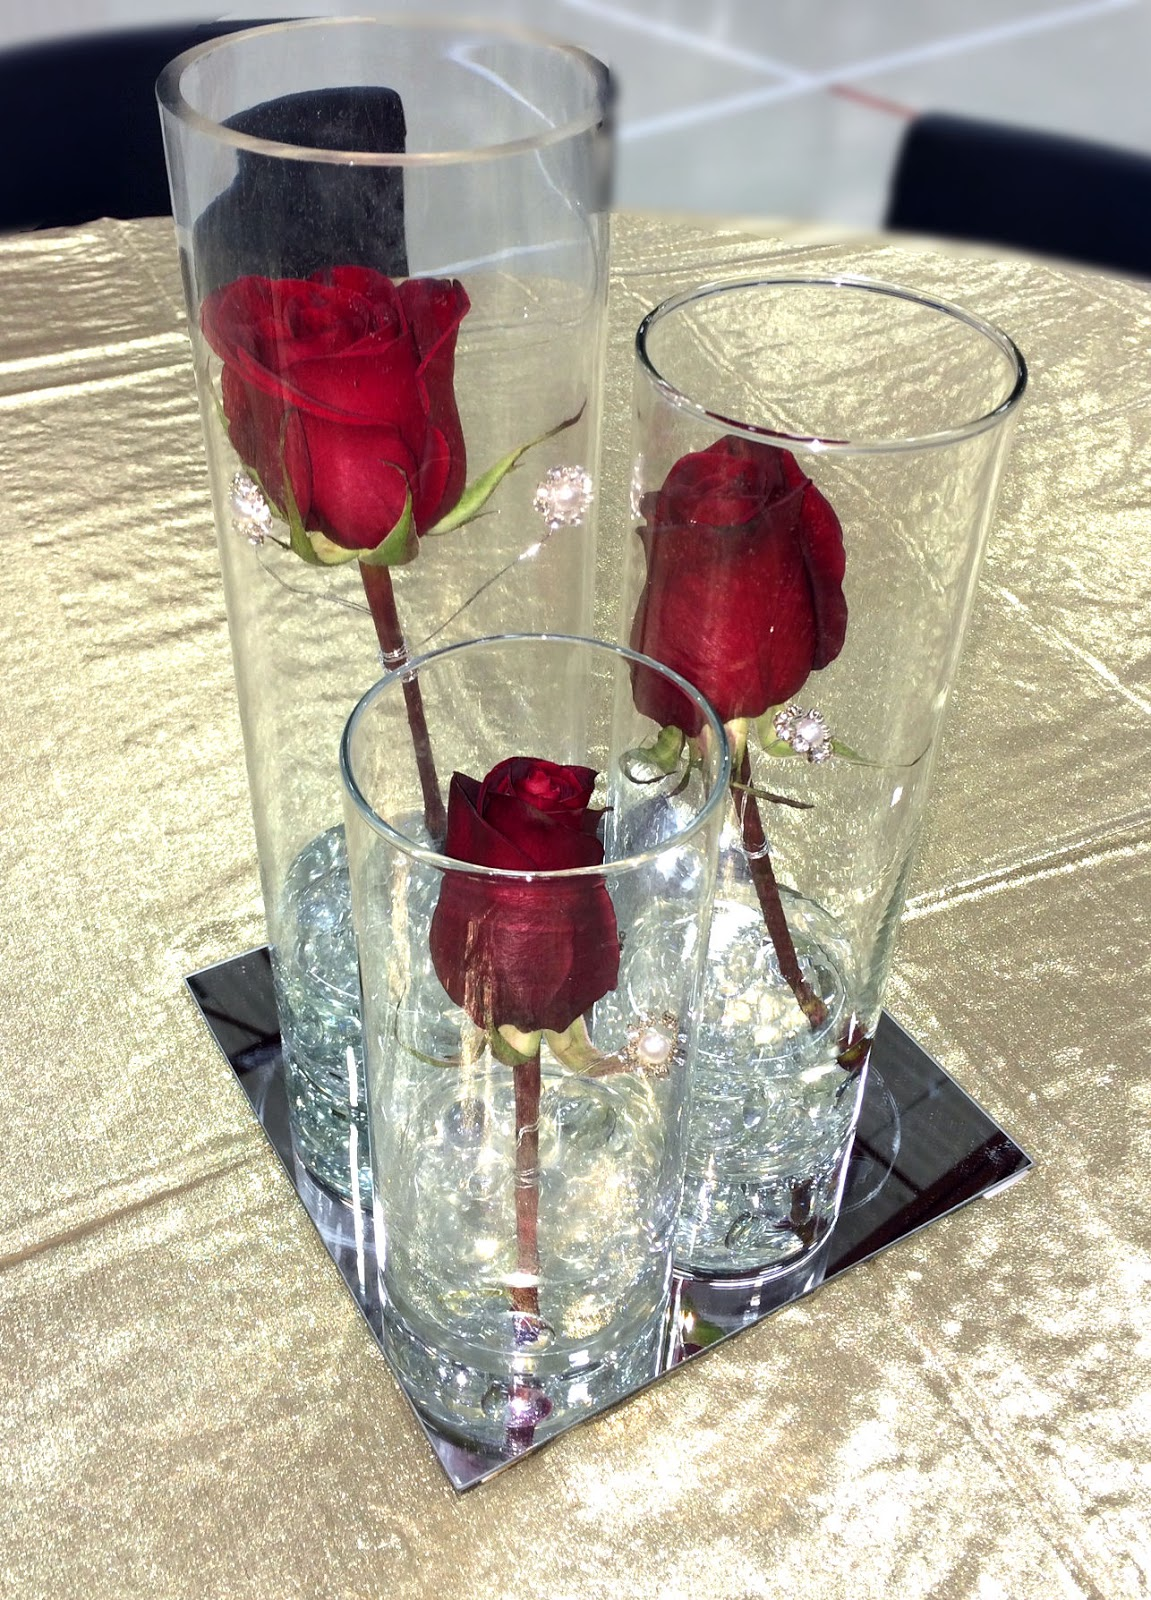 The Centerpieces Were 3 Vases Of Varied Height With A Burgundy Rose In Each Vase And Some Pearl Diamond Bling Wired To Roses These Sitting Atop